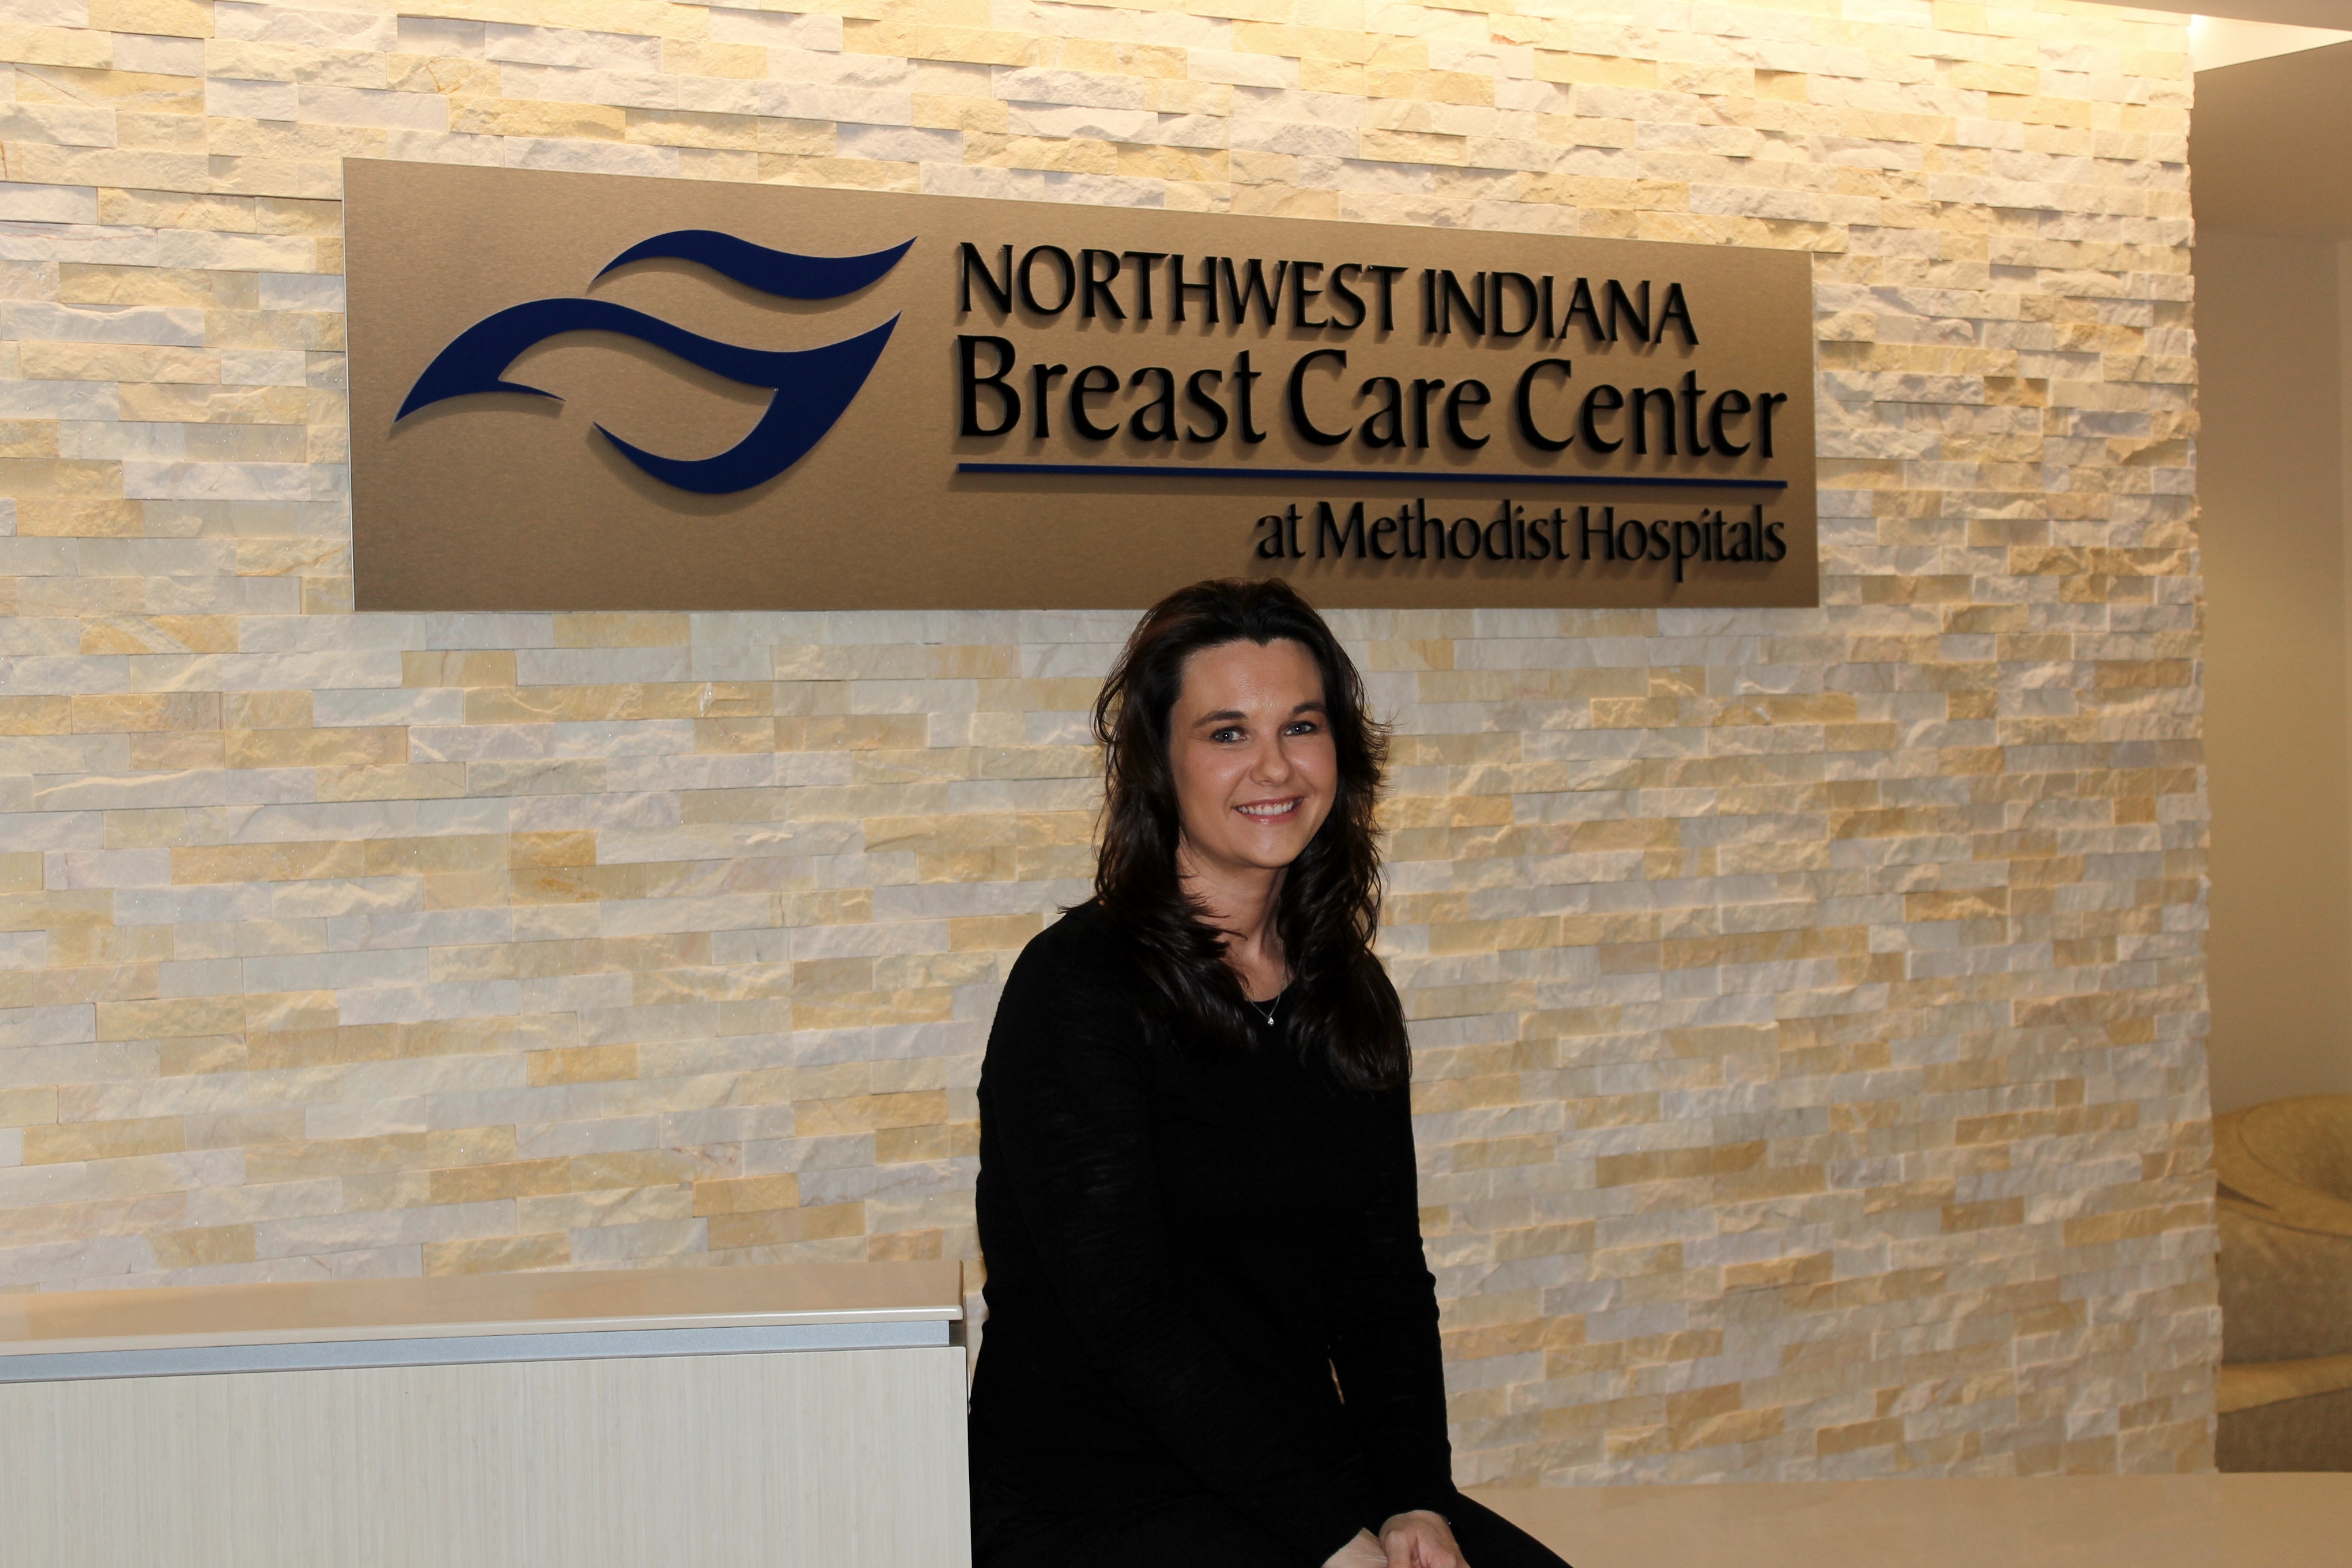 Meet Kim Asher of the Northwest Indiana Breast Care Center at Methodist Hospitals